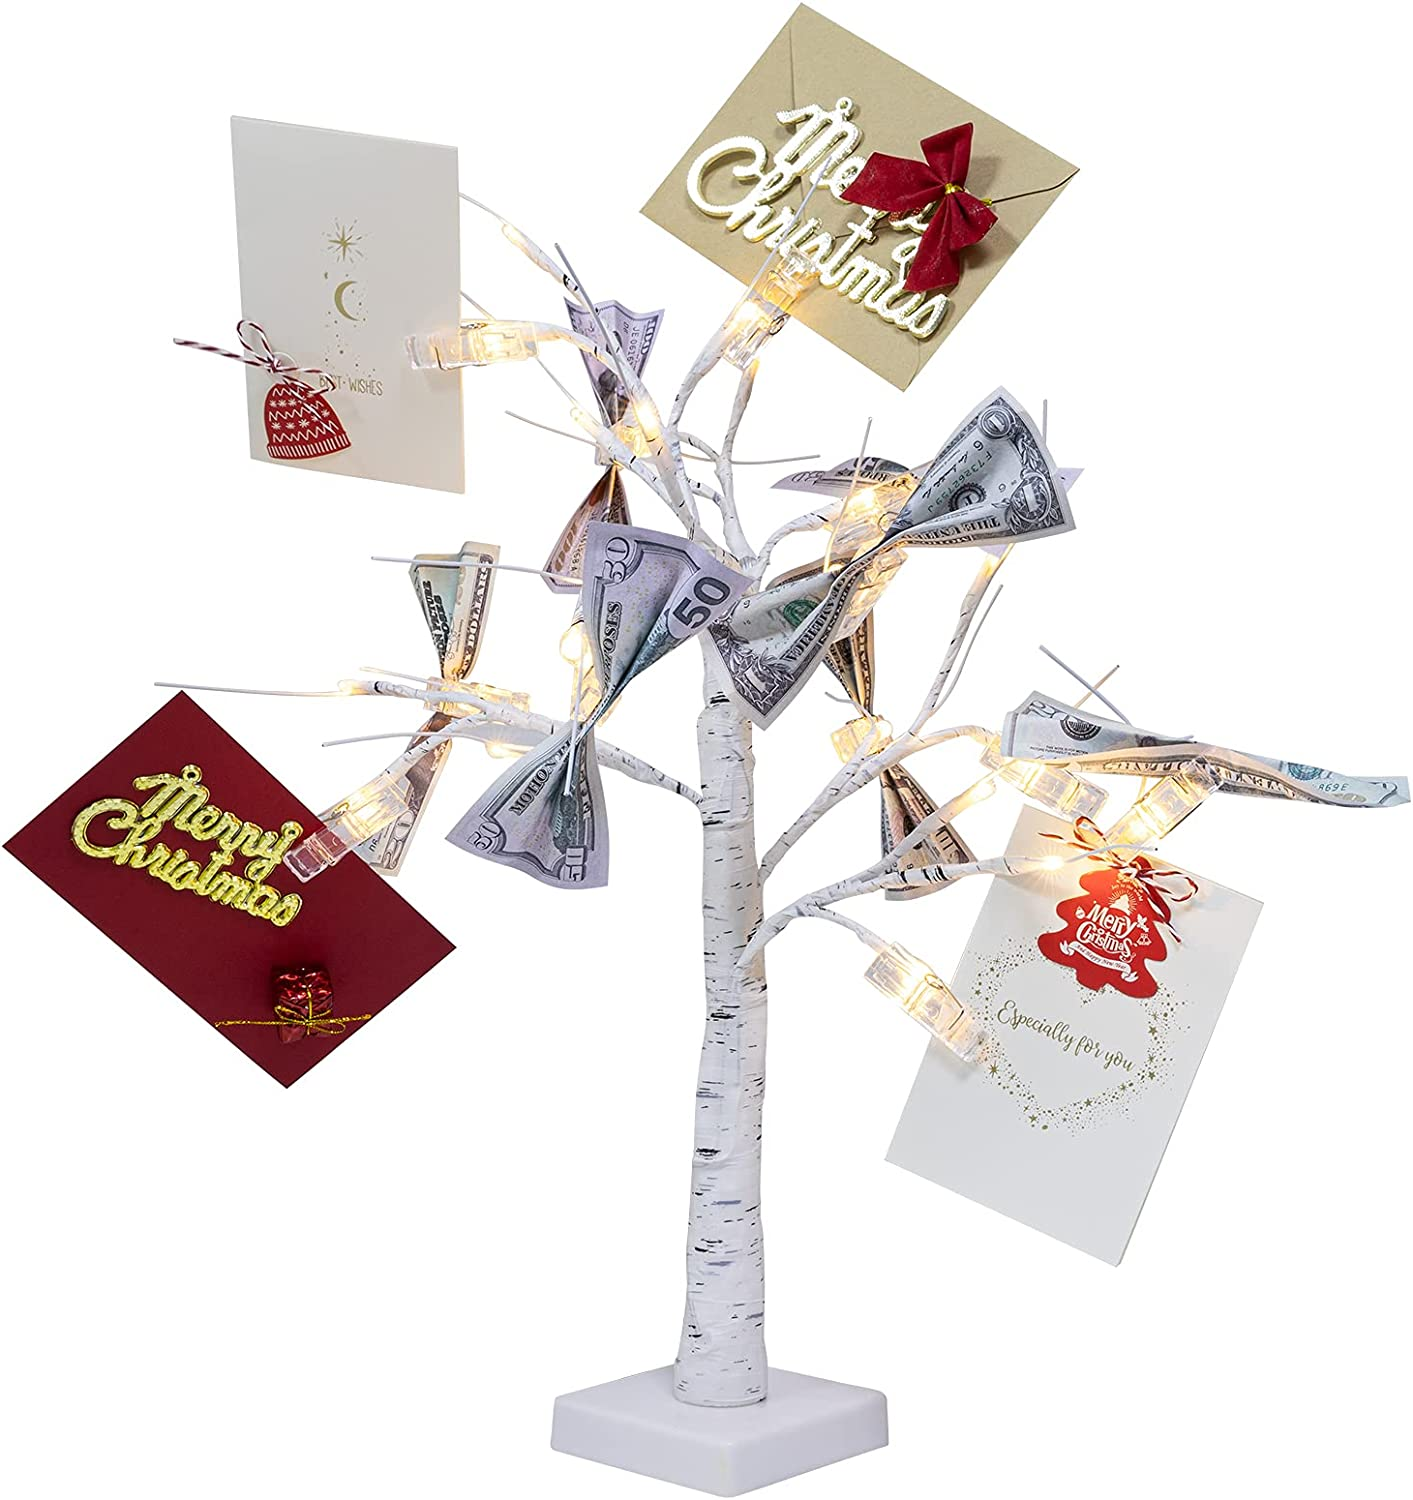 2FT Tall Money Tree Gift Card Holder with 1 USB Data Cable- Dual-use White Money Tree Present Card Holder Money Holder Tree for Christmas Wedding Desktop Home Decor Birthday Gift Holding Photo Card